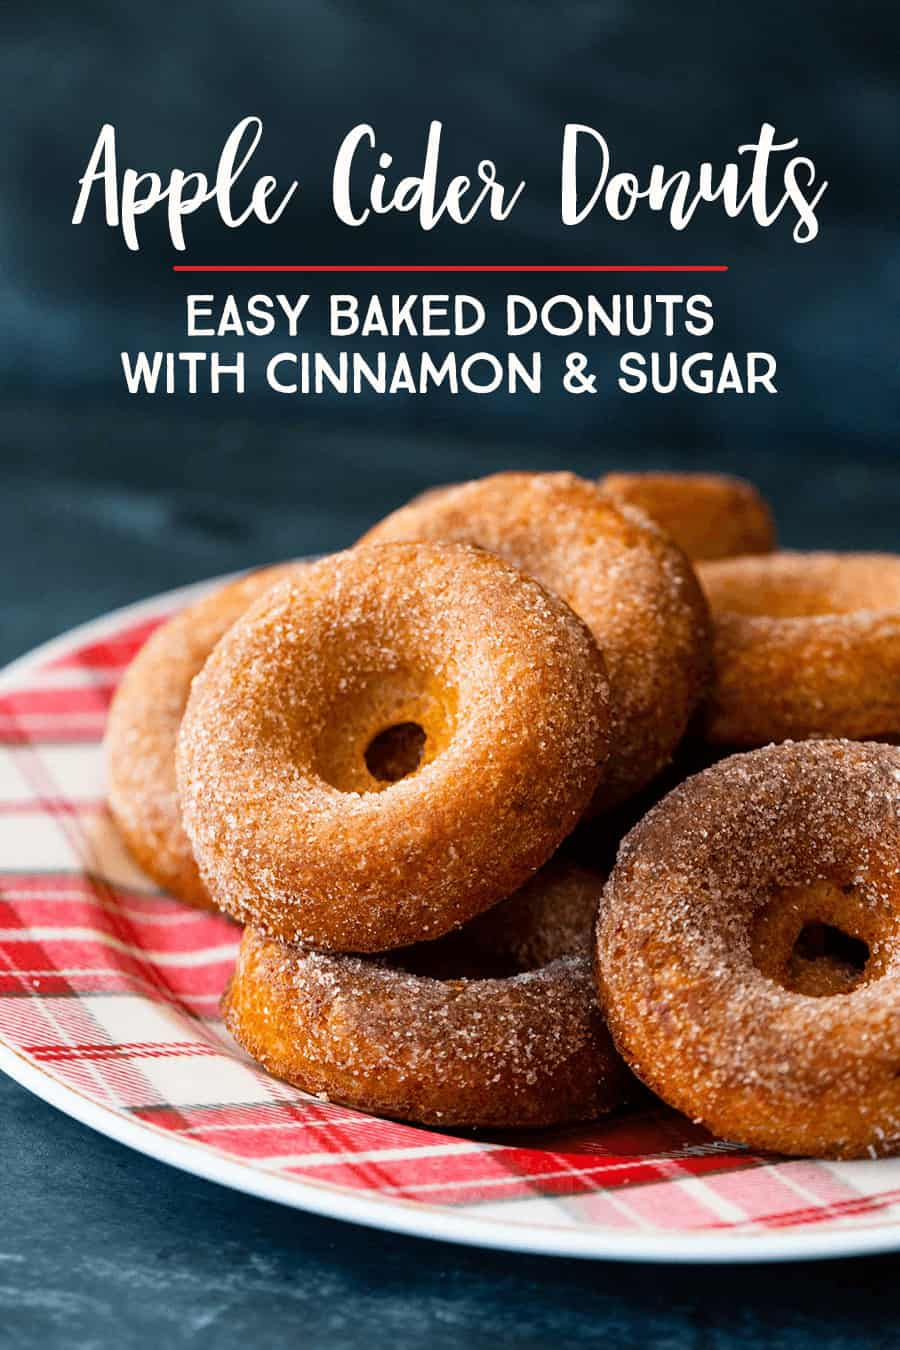 Easy Baked Apple Cider Donuts With Classic Cinnamon and Sugar Coating: This recipe is a MUST TRY autumn family tradition #recipe #donuts *Love these ideas and how easy these baked donuts look!